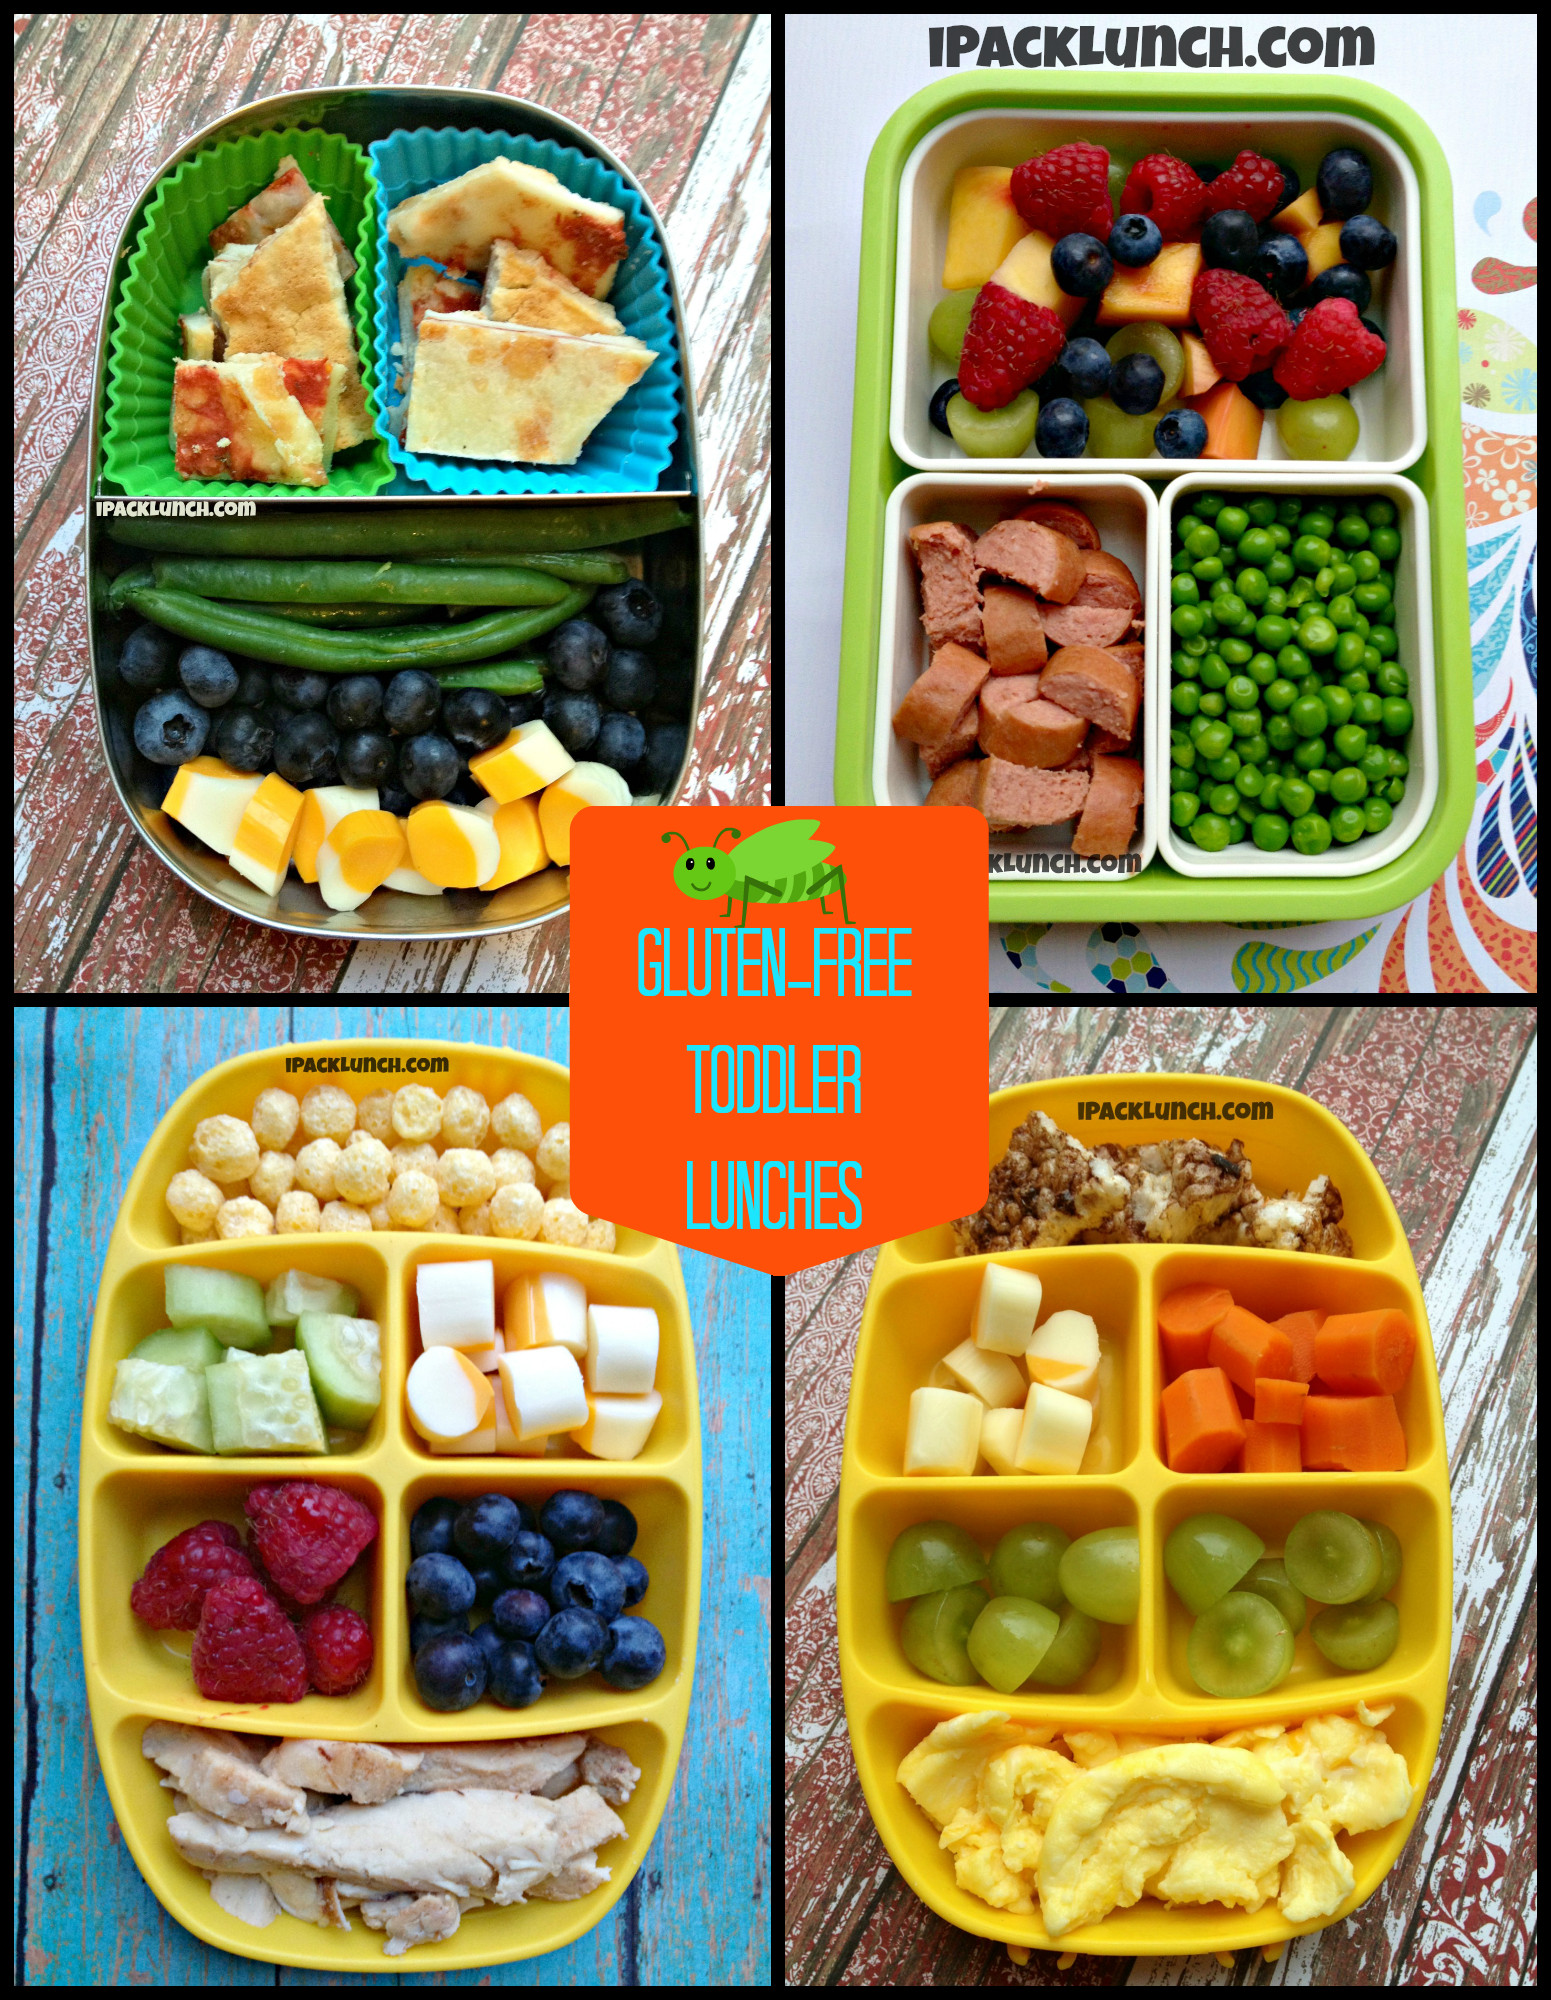 Healthy Toddler Lunches  Gluten Free Toddler Bento Lunch Ideas FoodSniffr For